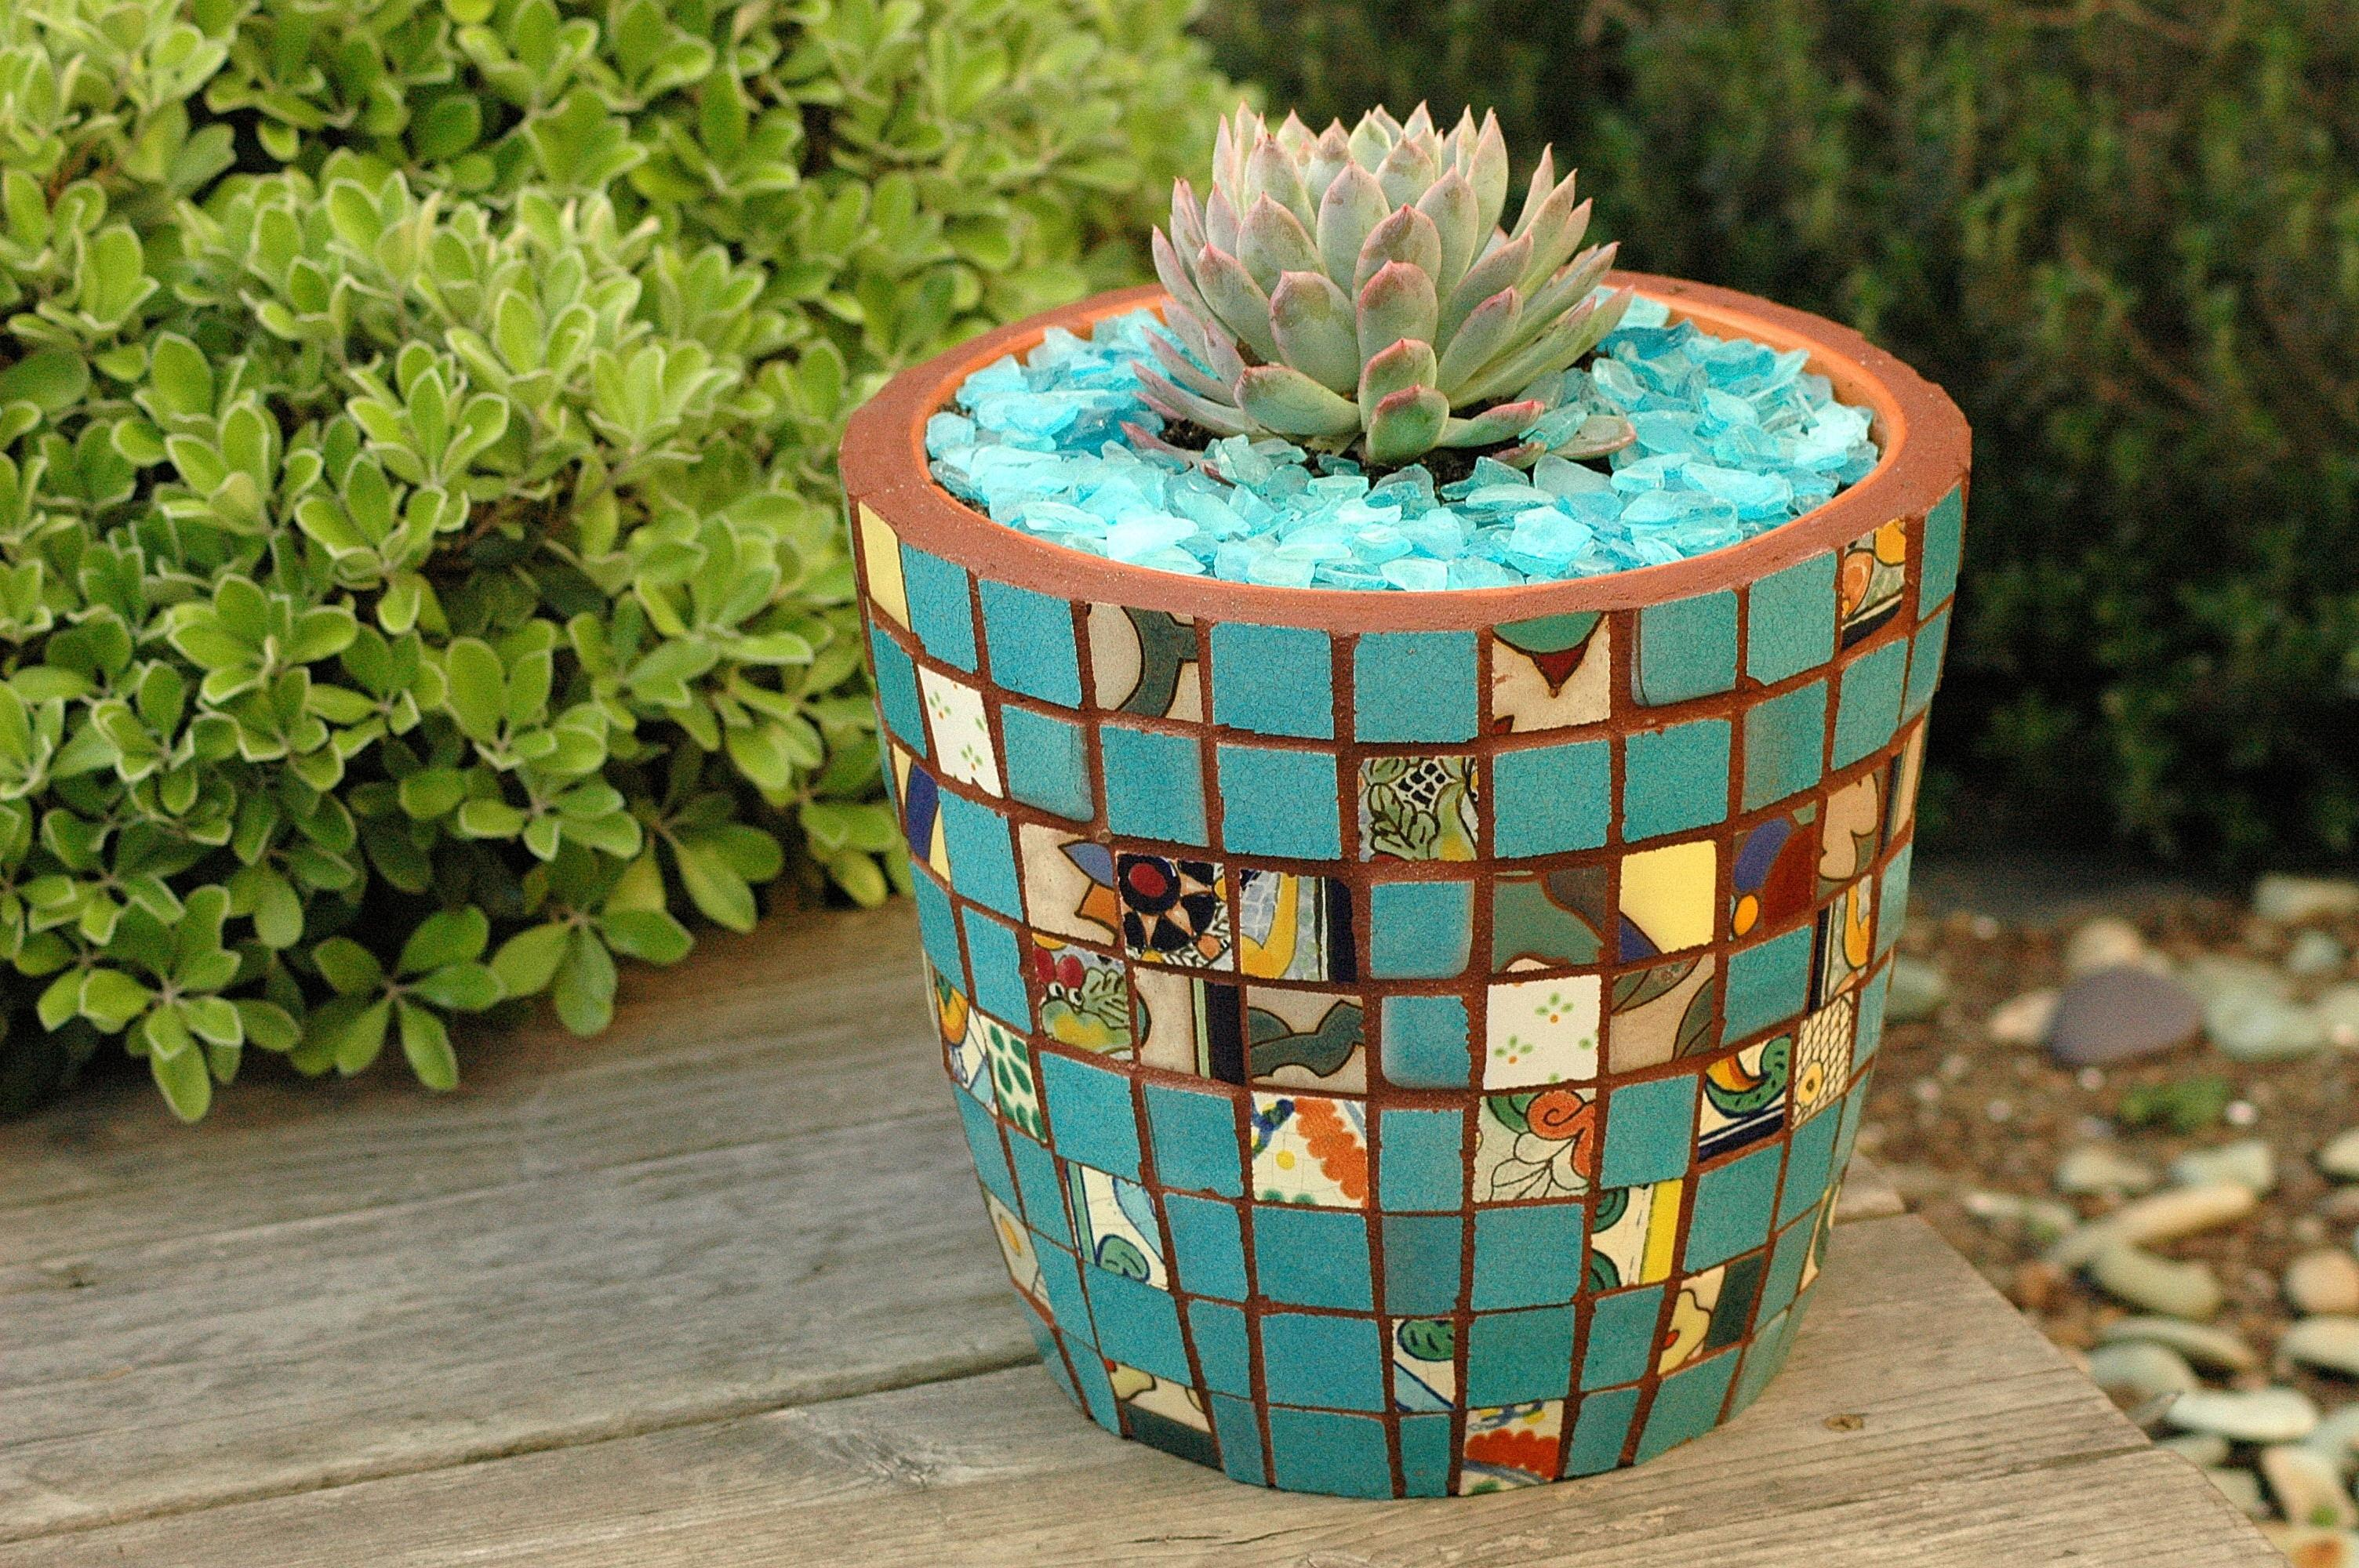 Mosaic Flower Pots Diy Outdoor Planters Large Garden